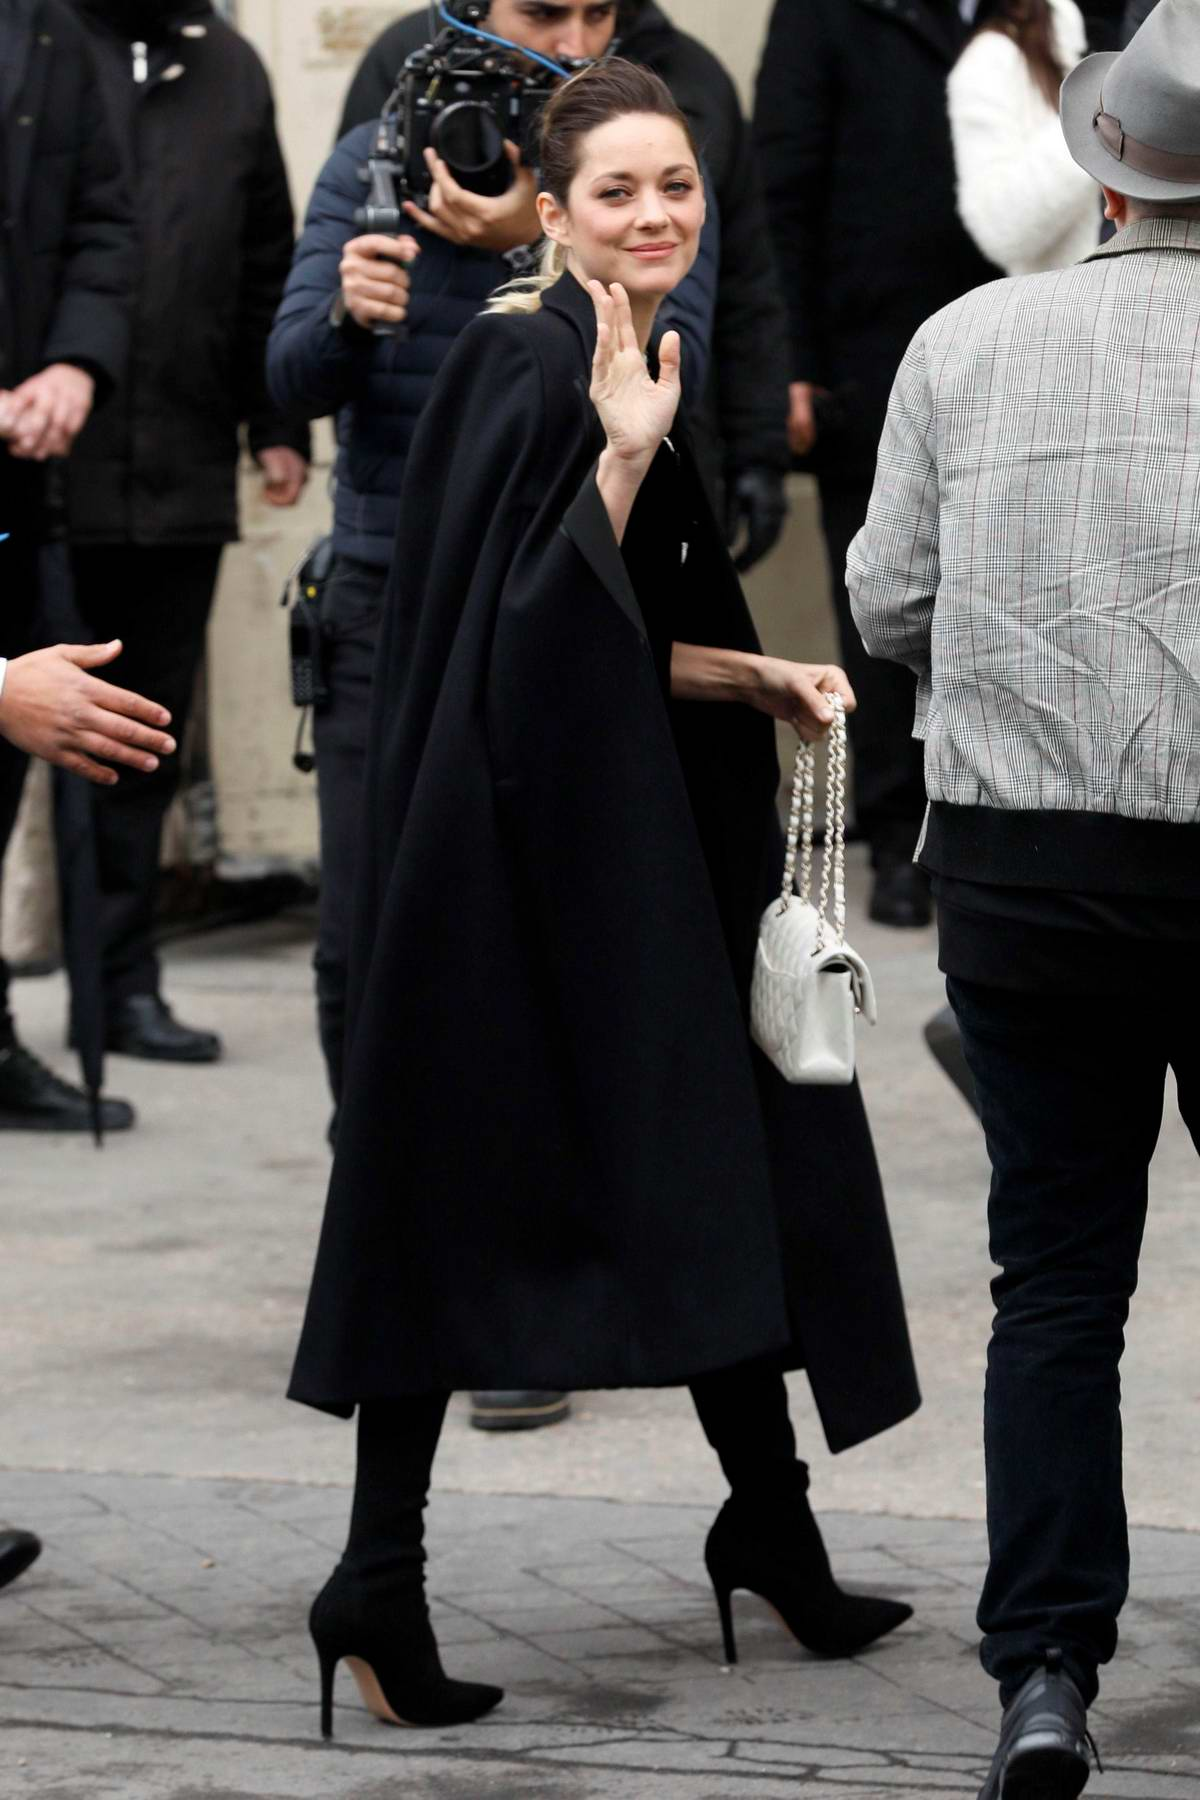 Marion Cotillard attends the Chanel show during Paris Fashion Week F/W 2019/20 in Paris, France